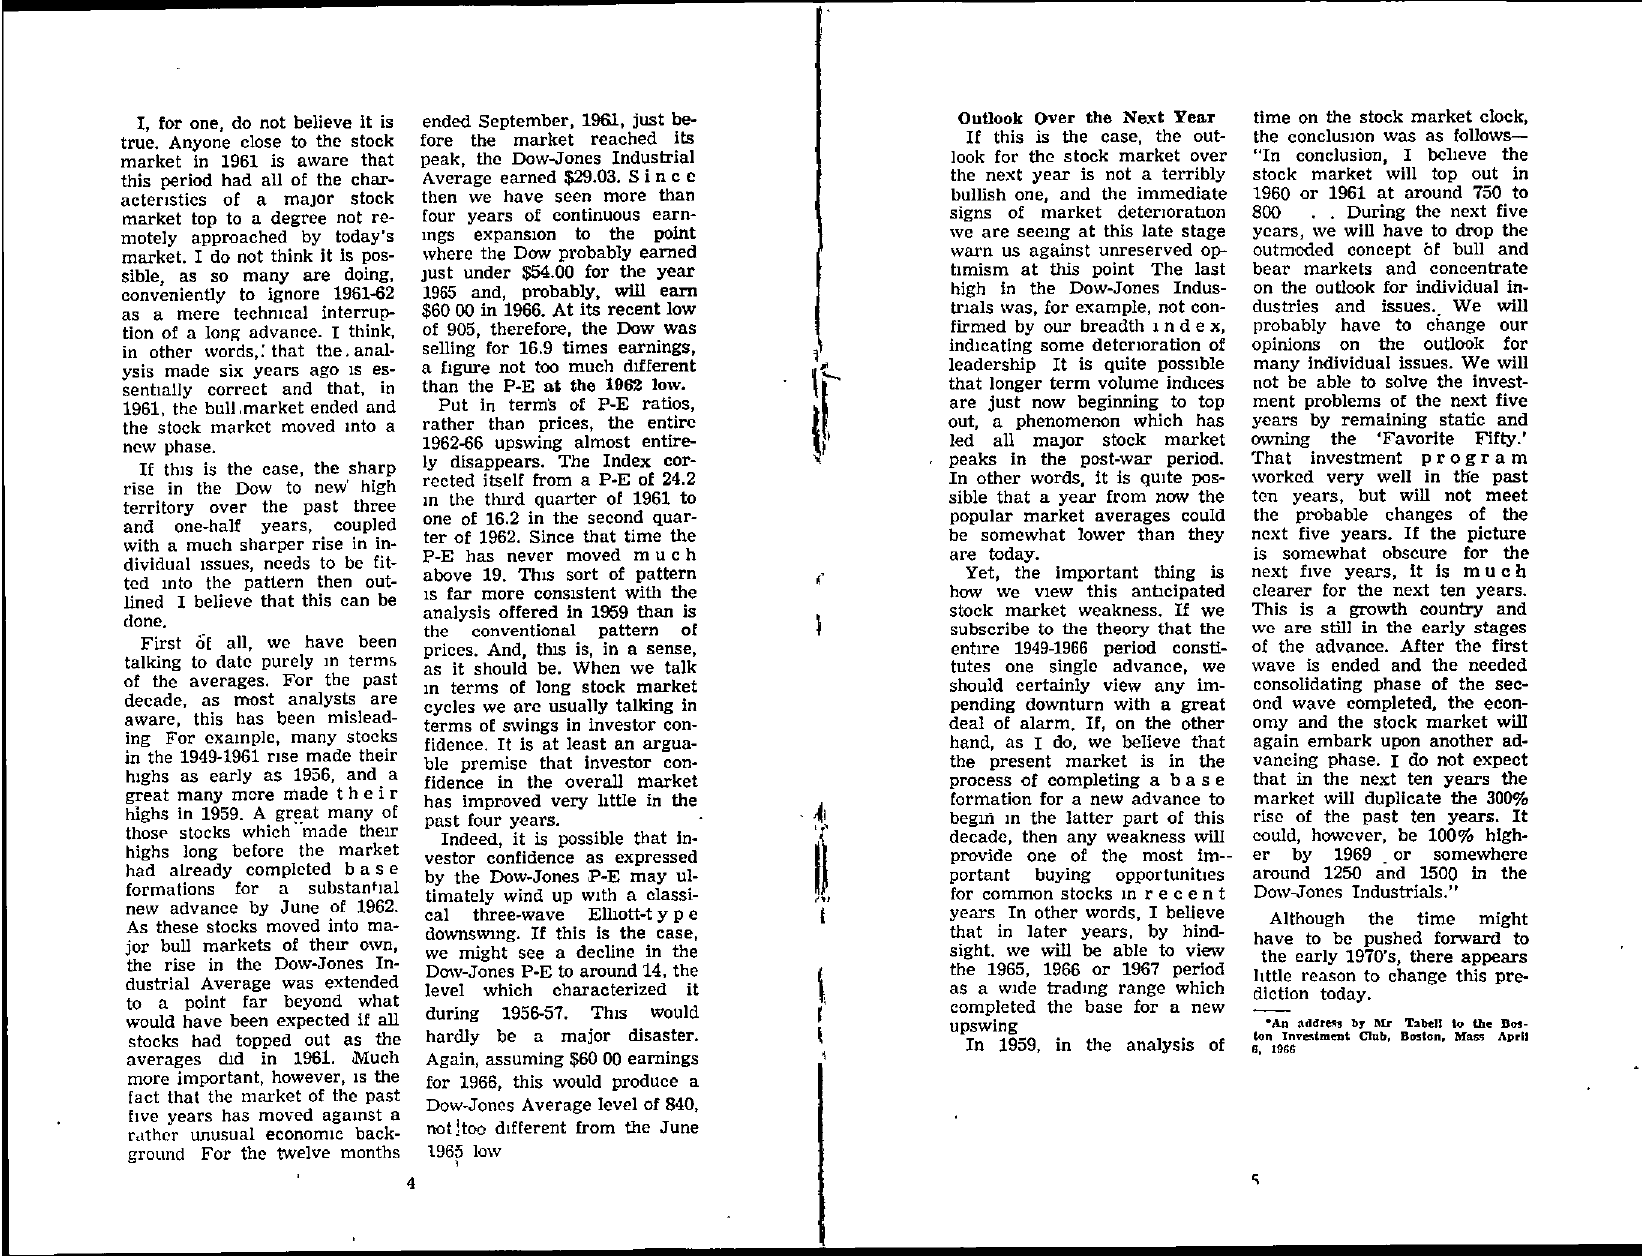 Tabell's Market Letter - May 20, 1966 page 3